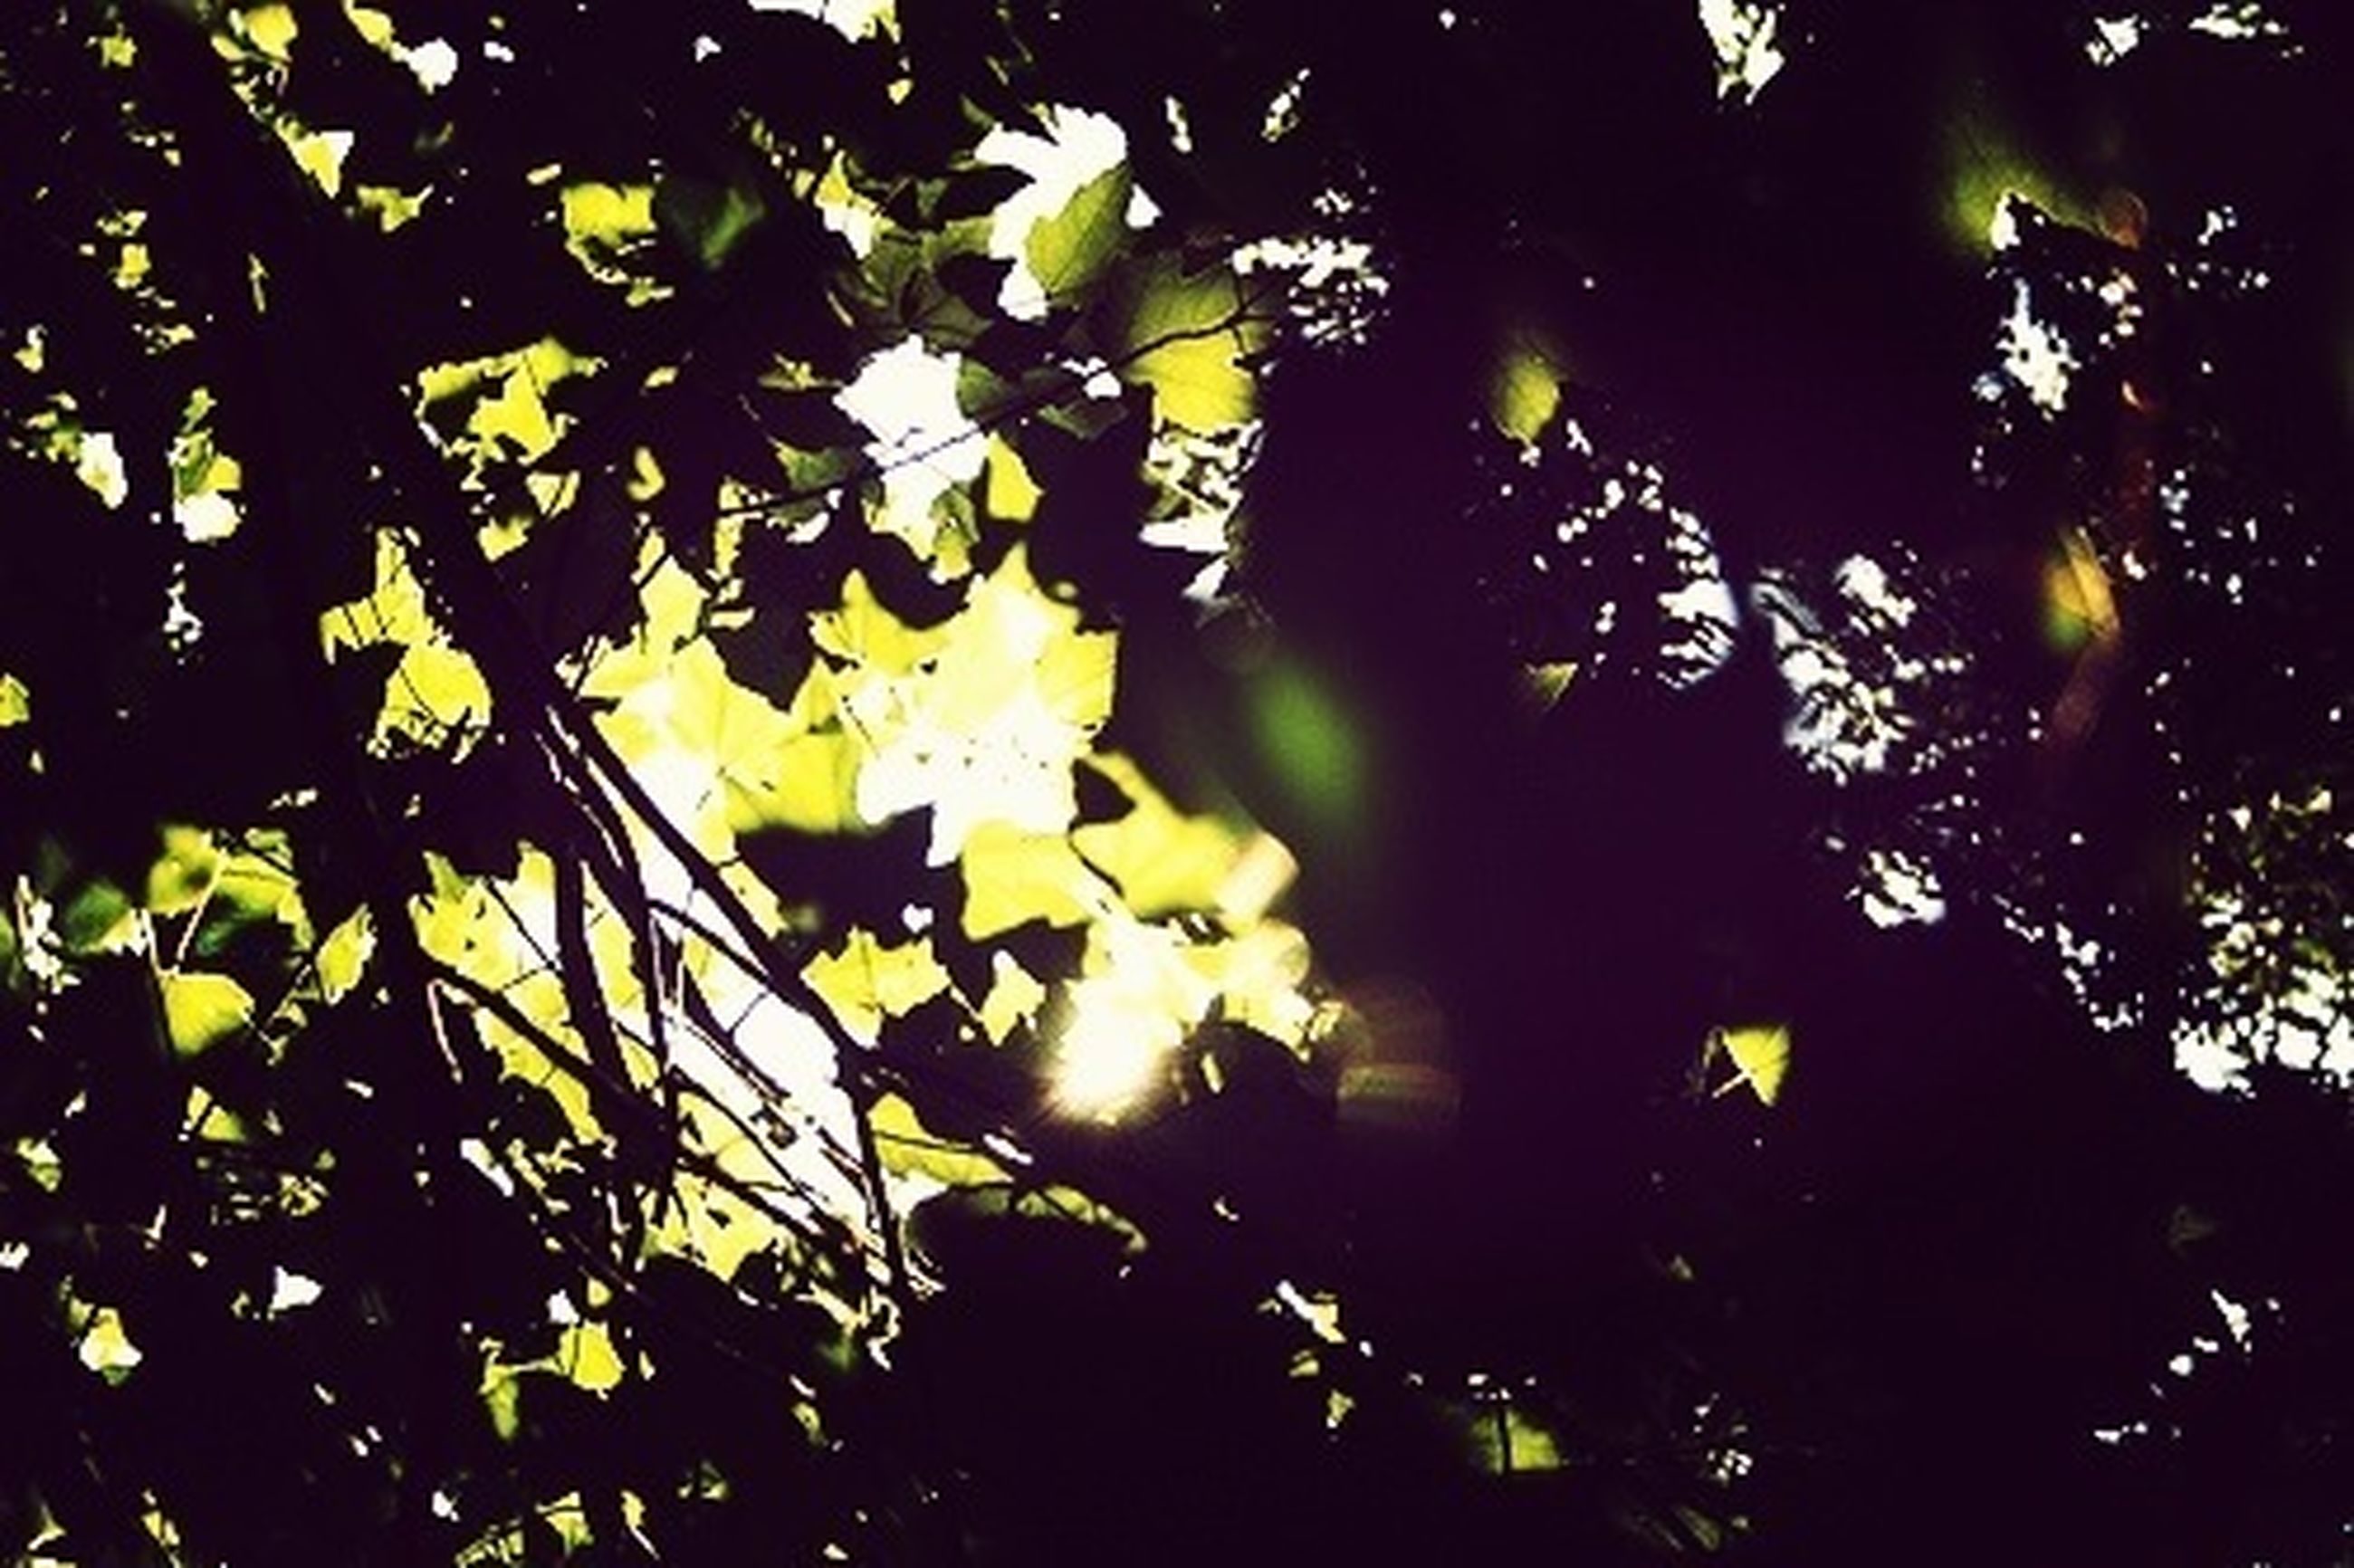 tree, low angle view, branch, growth, leaf, night, nature, silhouette, sunlight, illuminated, outdoors, tranquility, no people, beauty in nature, backgrounds, full frame, green color, lens flare, sky